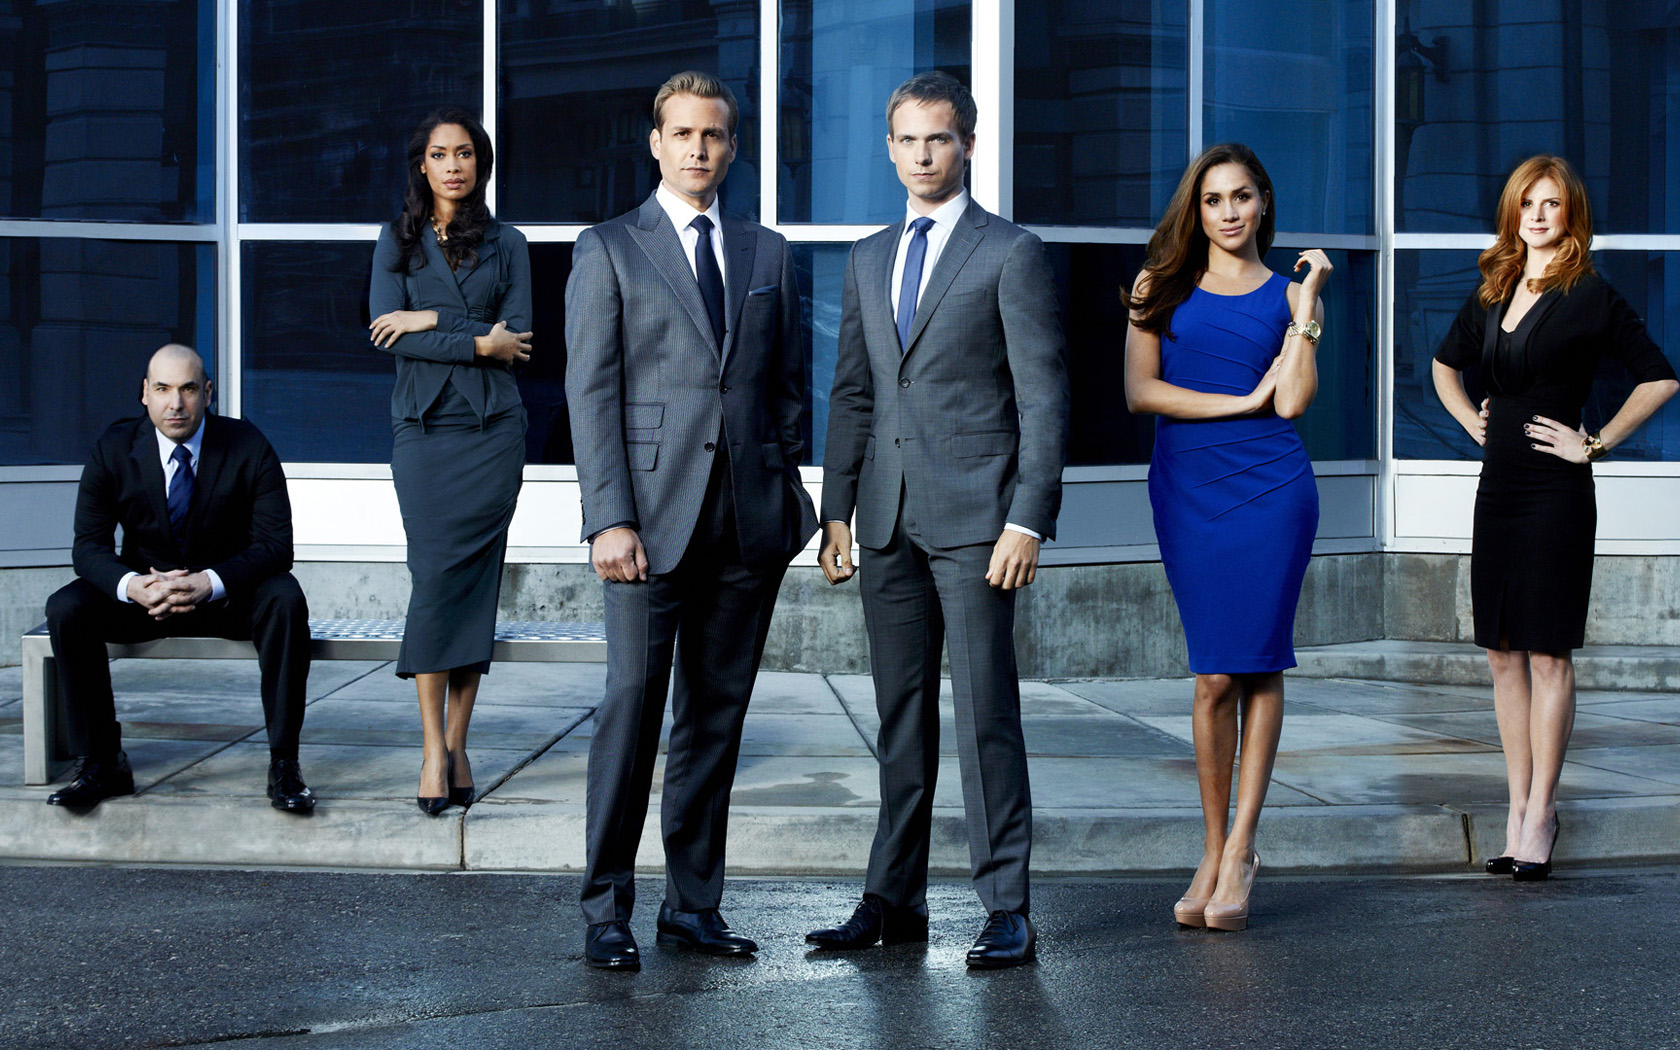 suits harvey specter rachel zane wallpaper hd tv series 4k wallpapers images photos and background suits harvey specter rachel zane